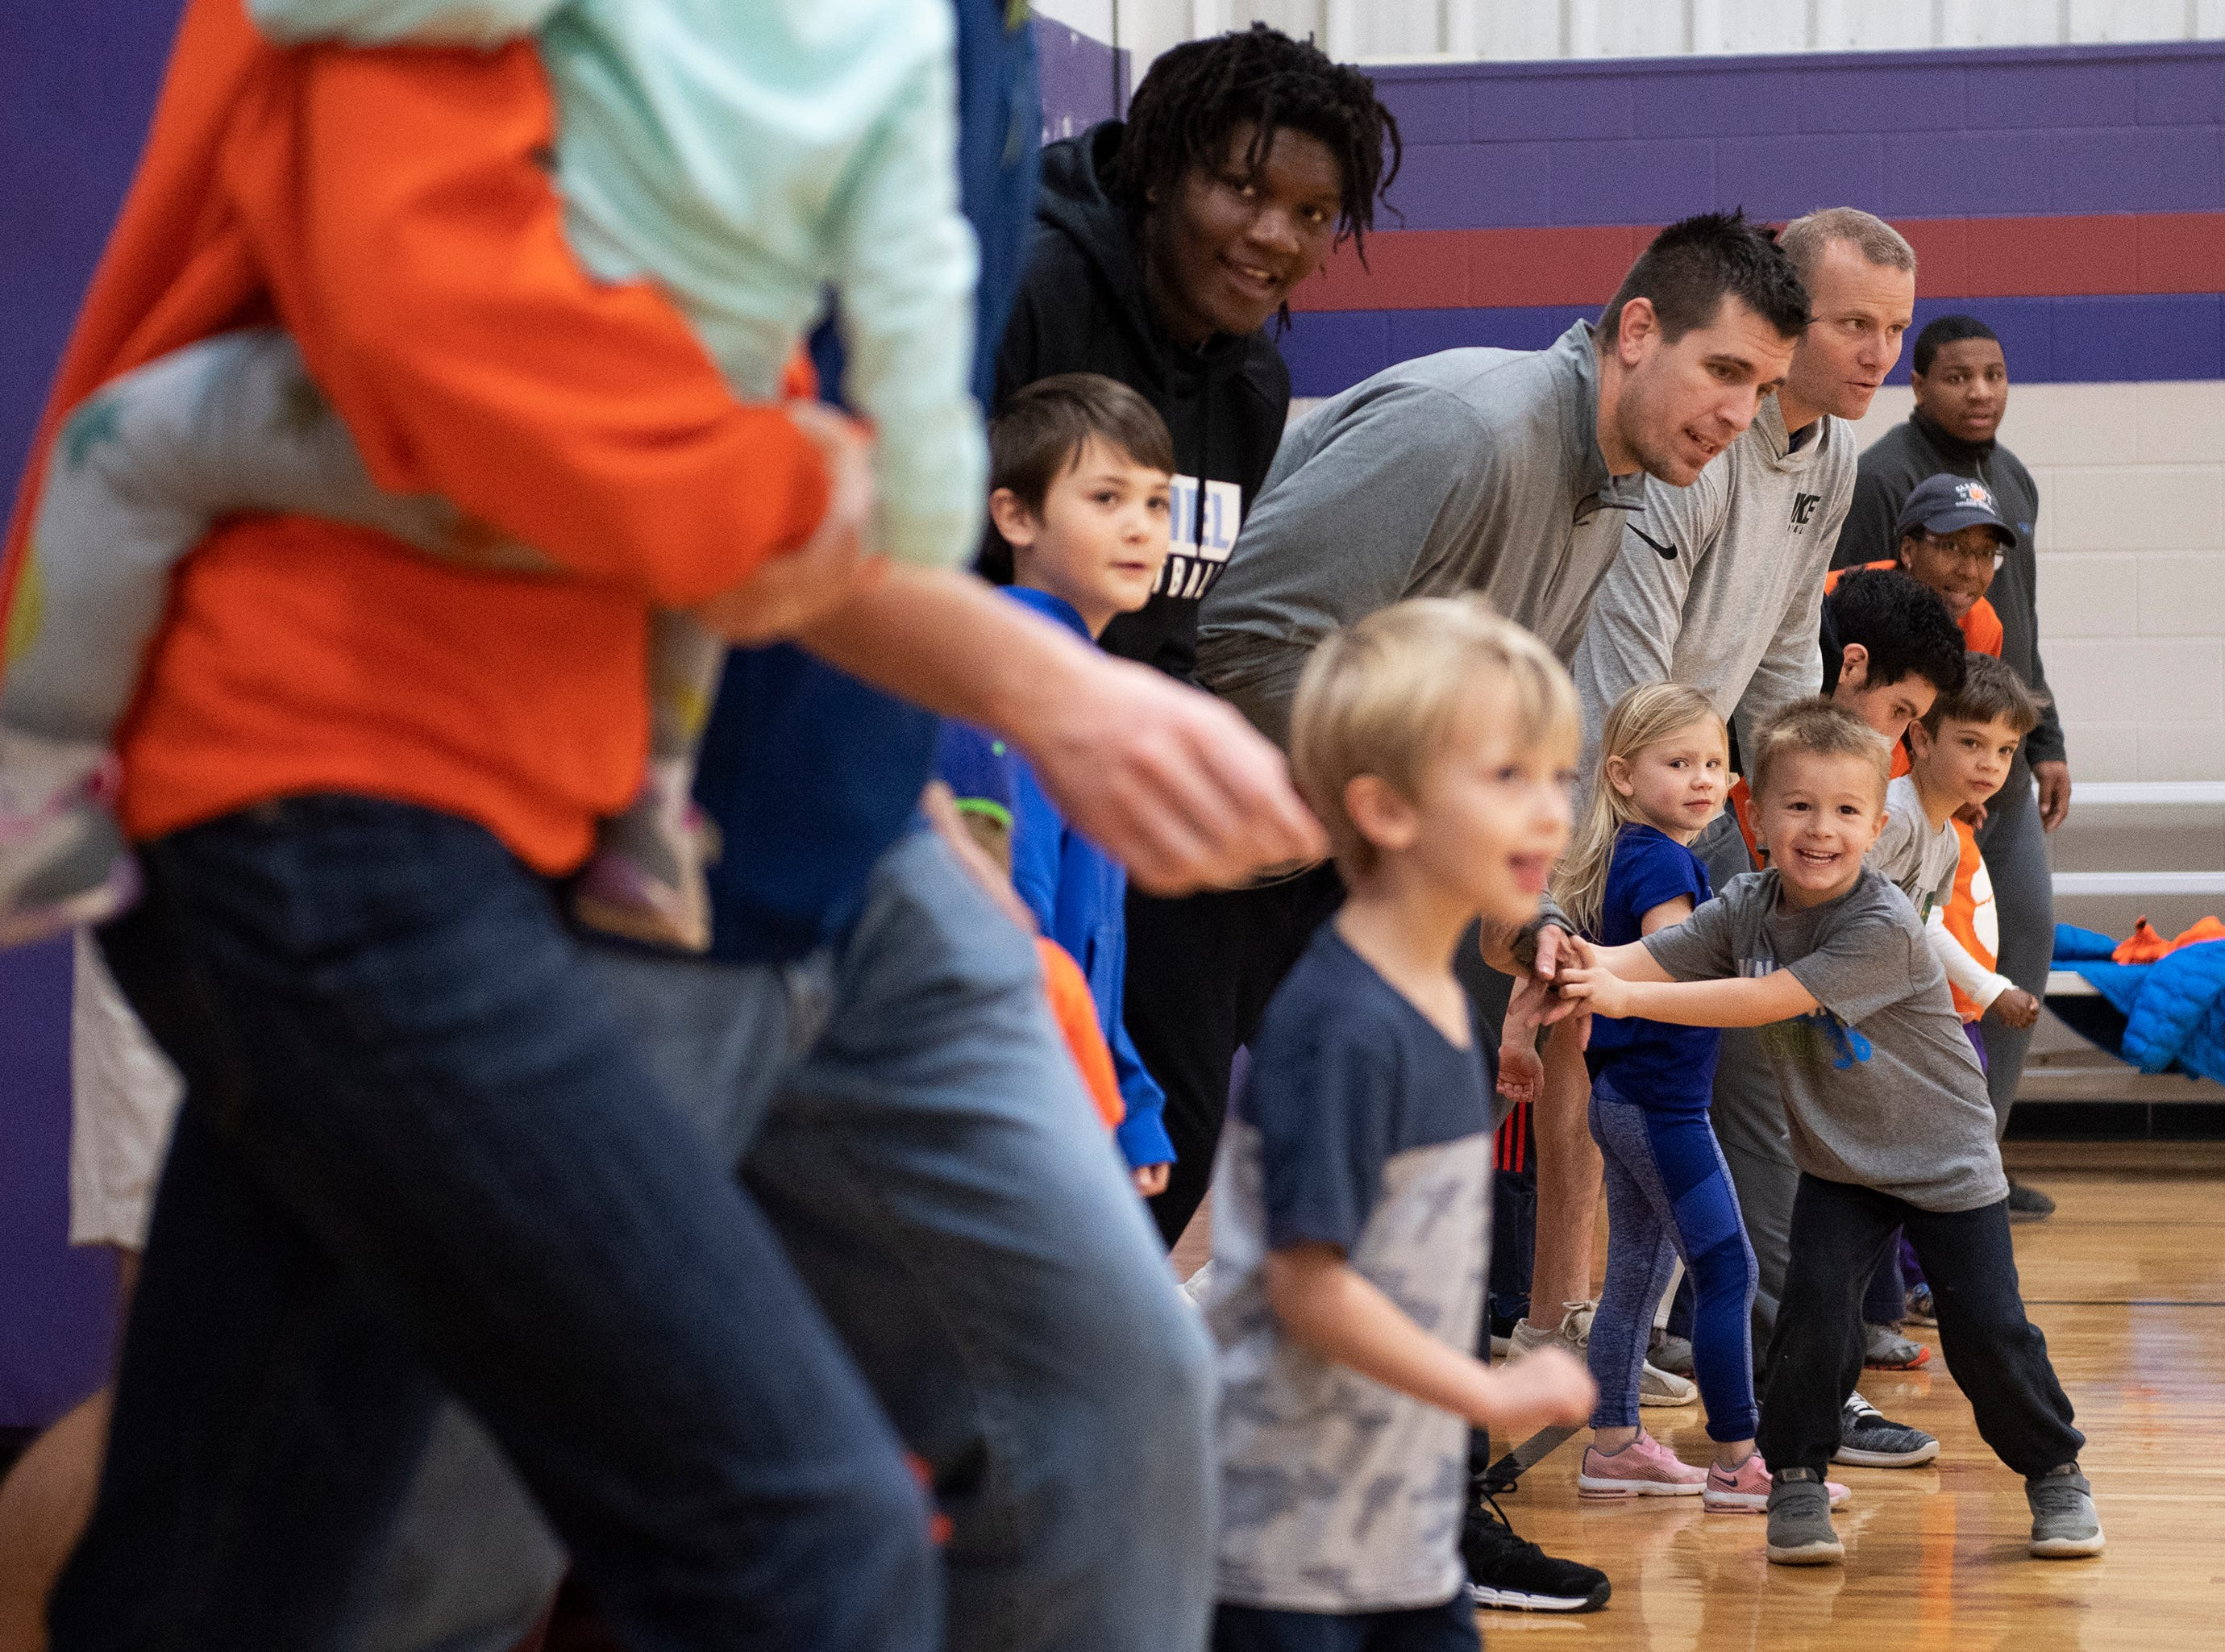 Parents and kids work on basketball drills with players and coaches from D.W. Daniel High School during the Smart Start Basketball program at Central-Clemson Recreational Center Saturday, Feb. 2, 2019.